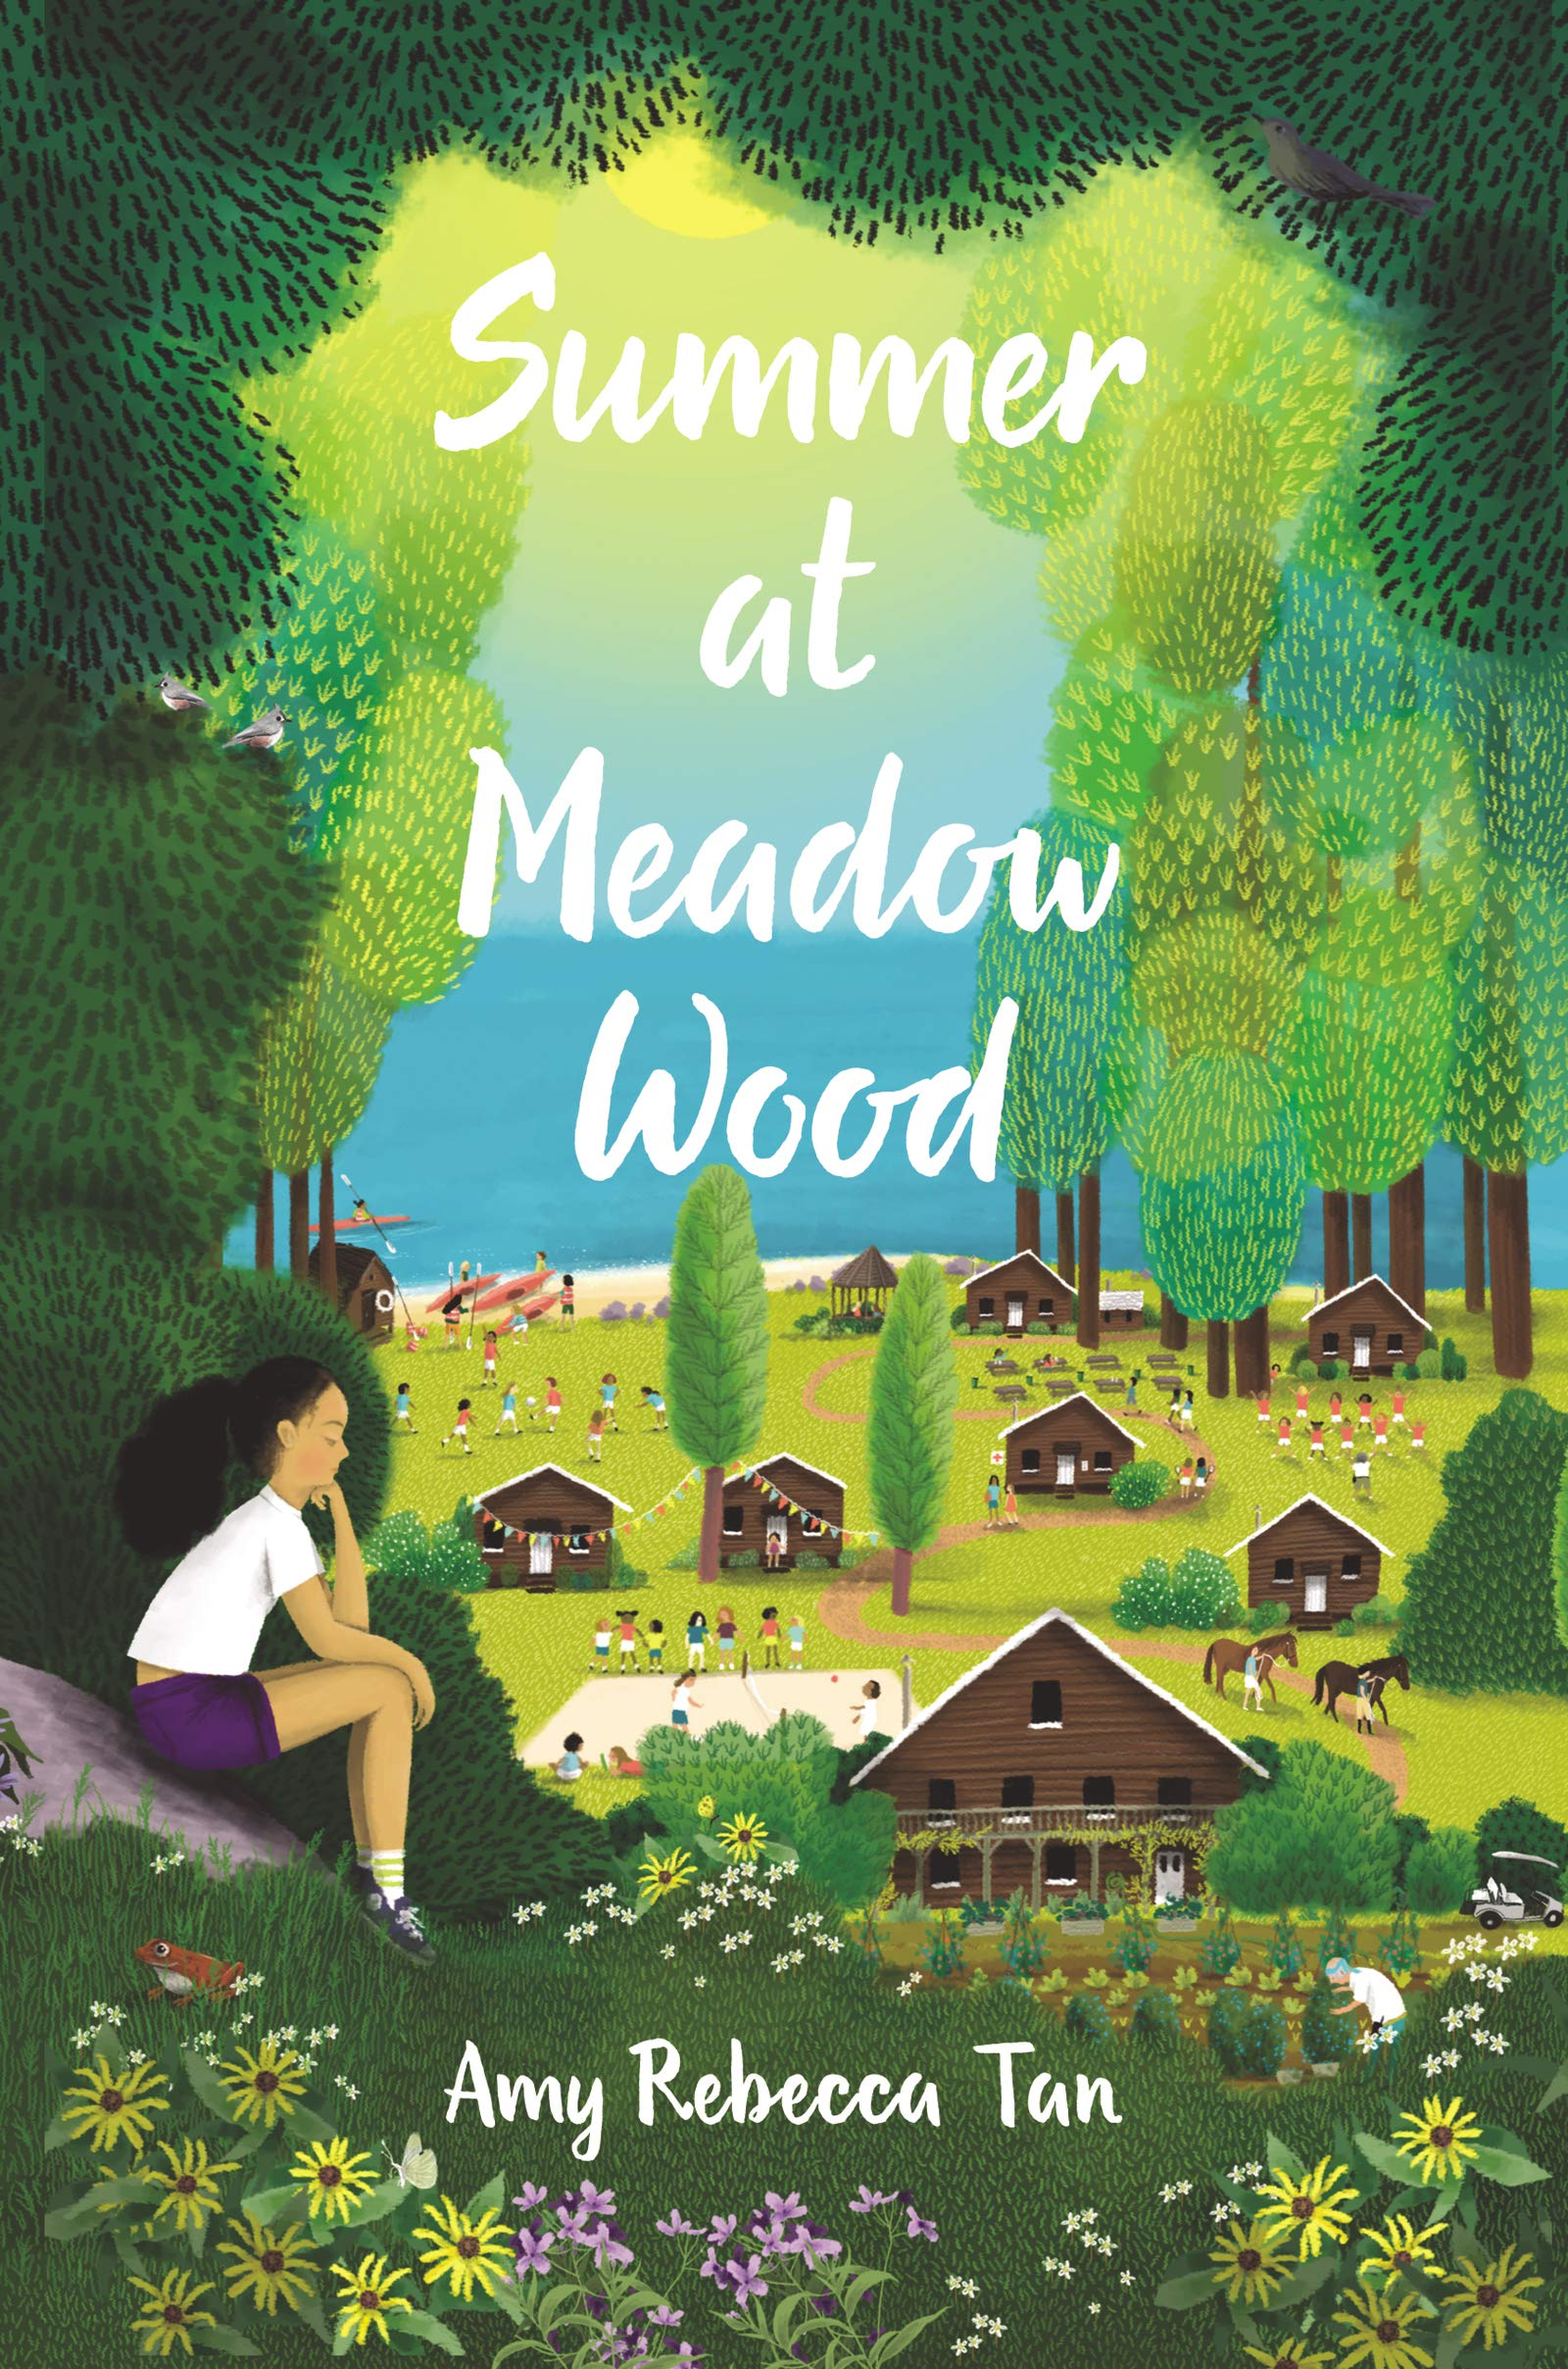 Summer at Meadow Wood: Tan, Amy Rebecca: 9780062795458: Amazon.com ...